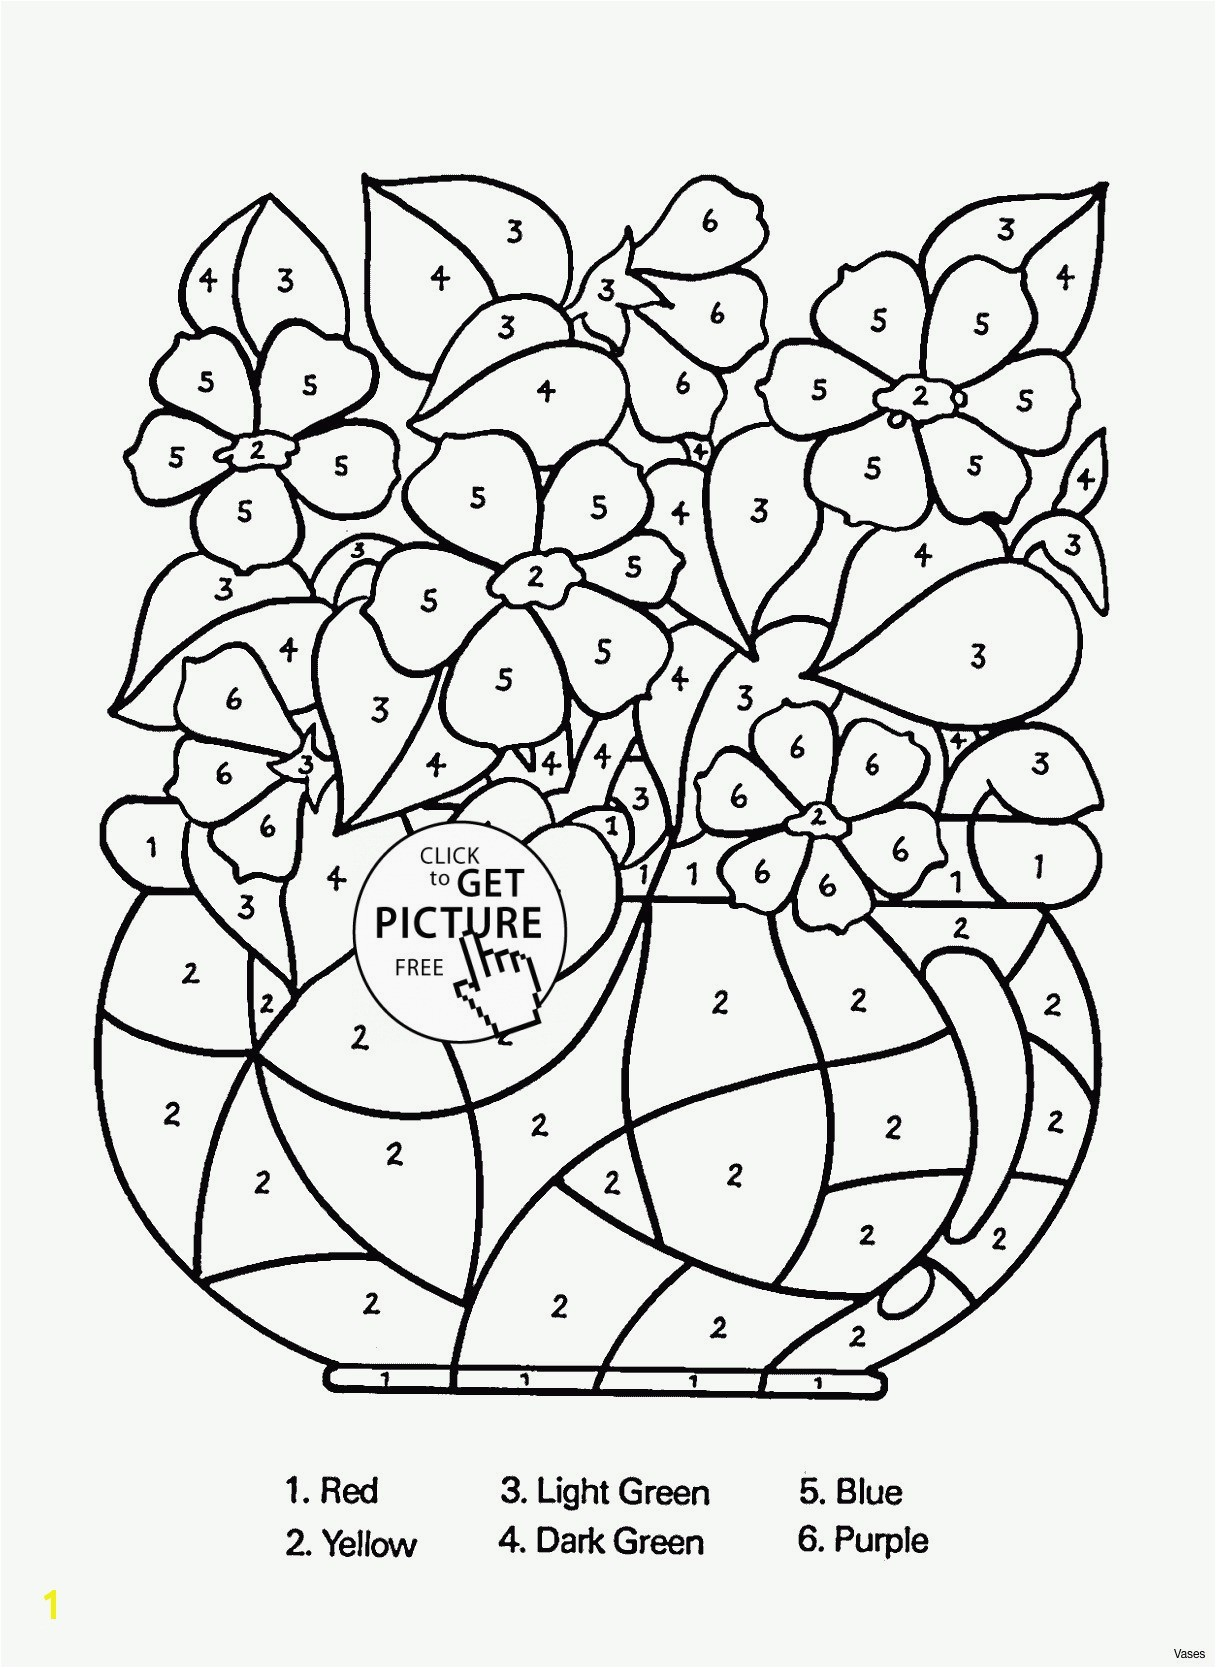 Free Printable Coloring Pages For Kids Printable Kids Coloring Pages Fresh Printable Coloring 0d Archives